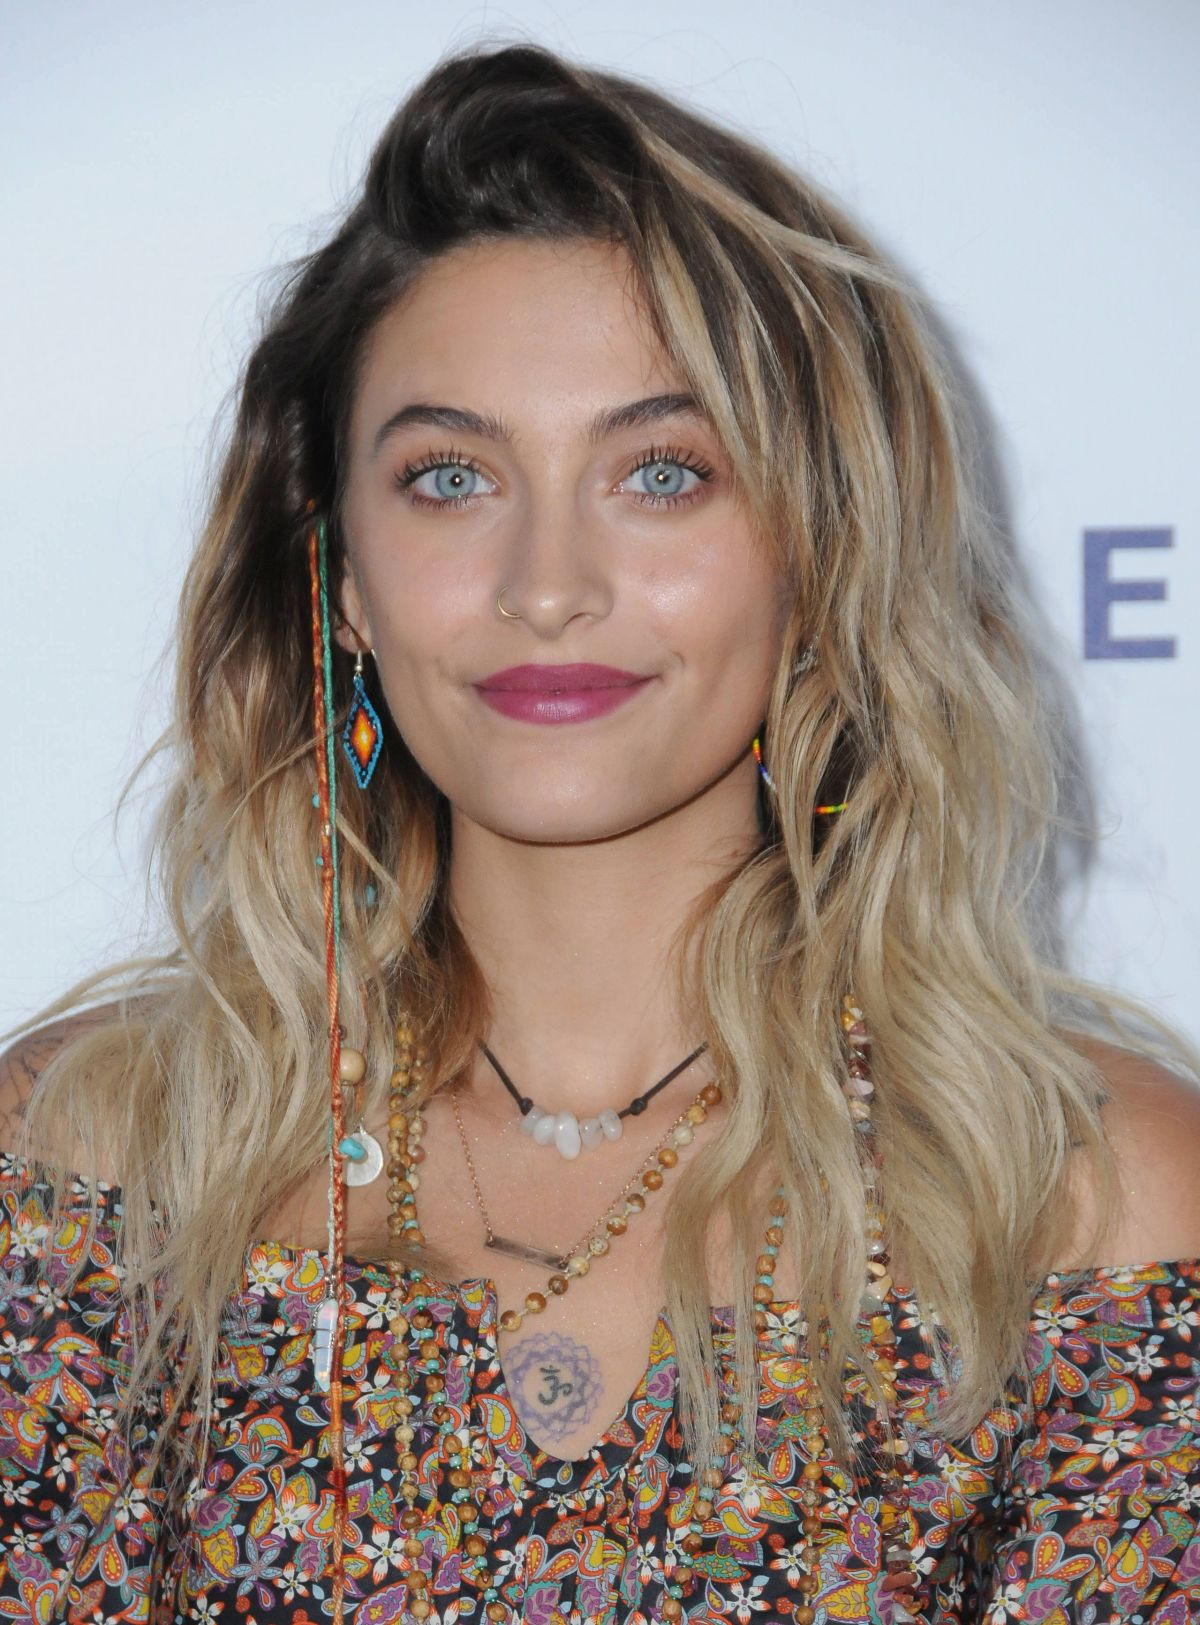 Paris Jackson Attends the mothers2mothers and The Elizabeth Taylor AIDS Foundation Benefit Dinner in Beverly Hills, California